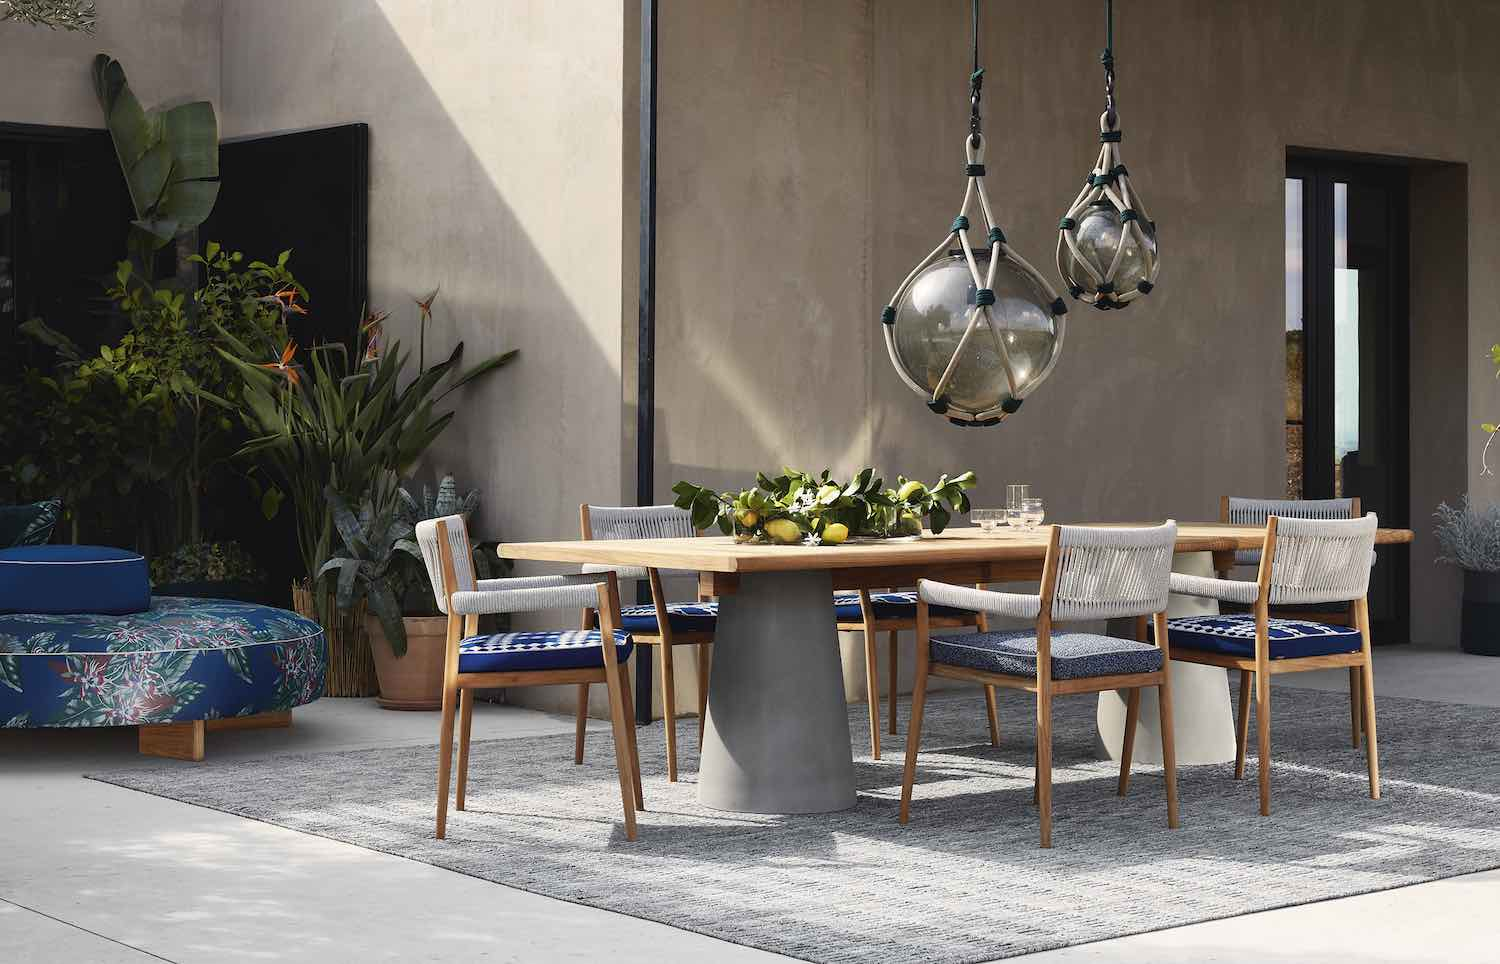 Cassina Perspective Goes Outdoor - SAIL OUT by Rodolfo Dordoni - Photo by De Pasquale+Maffini.